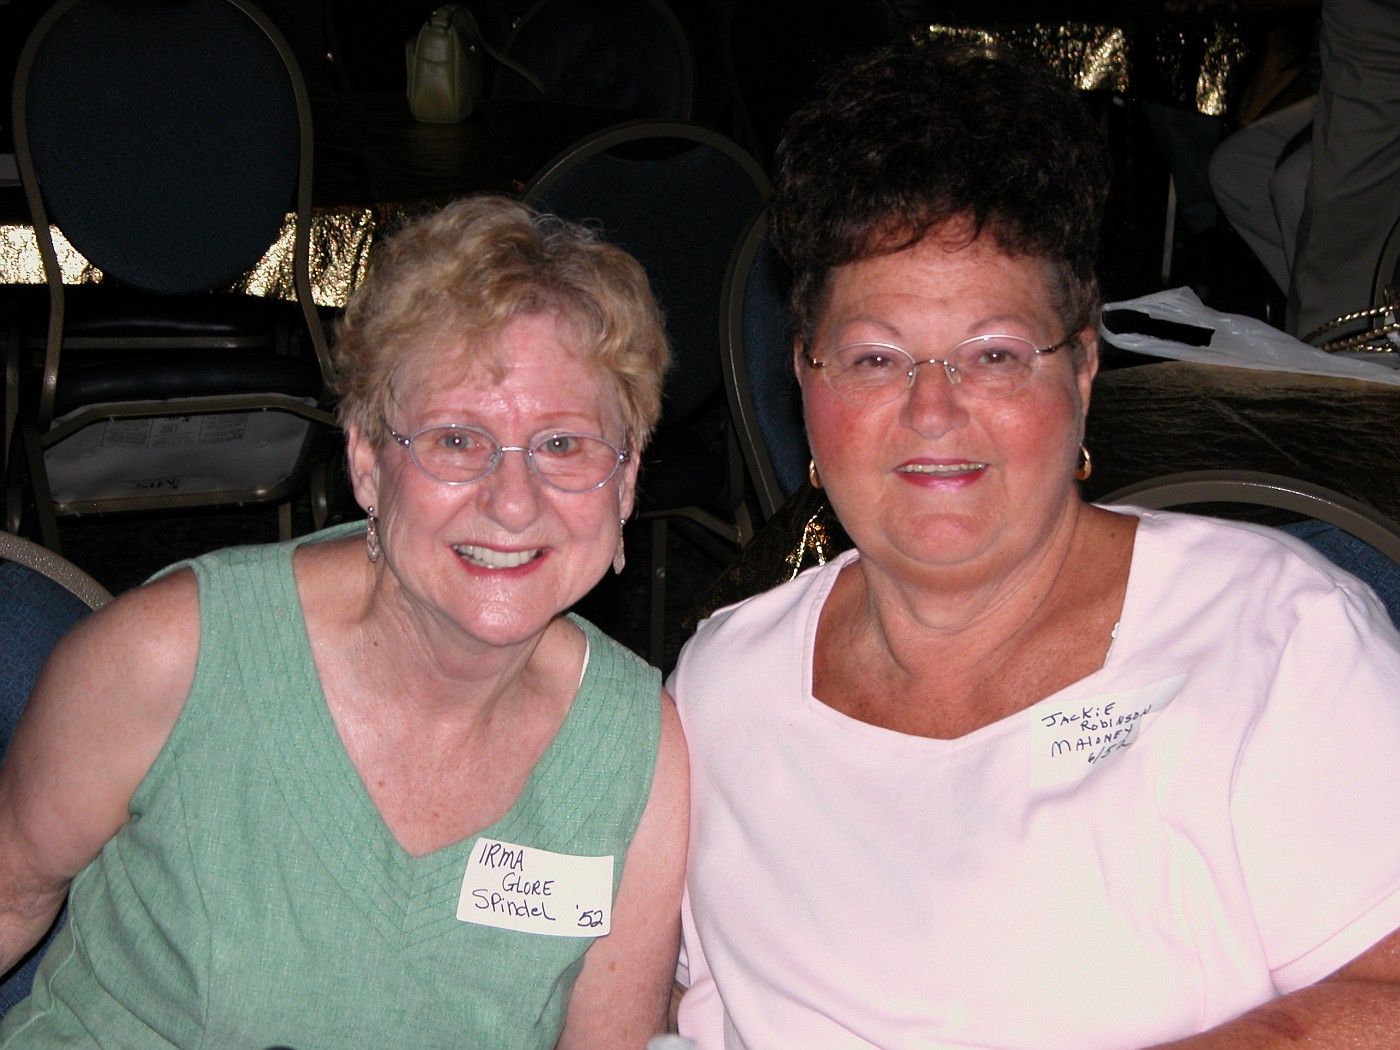 Irma Spindel, Jackie Maloney